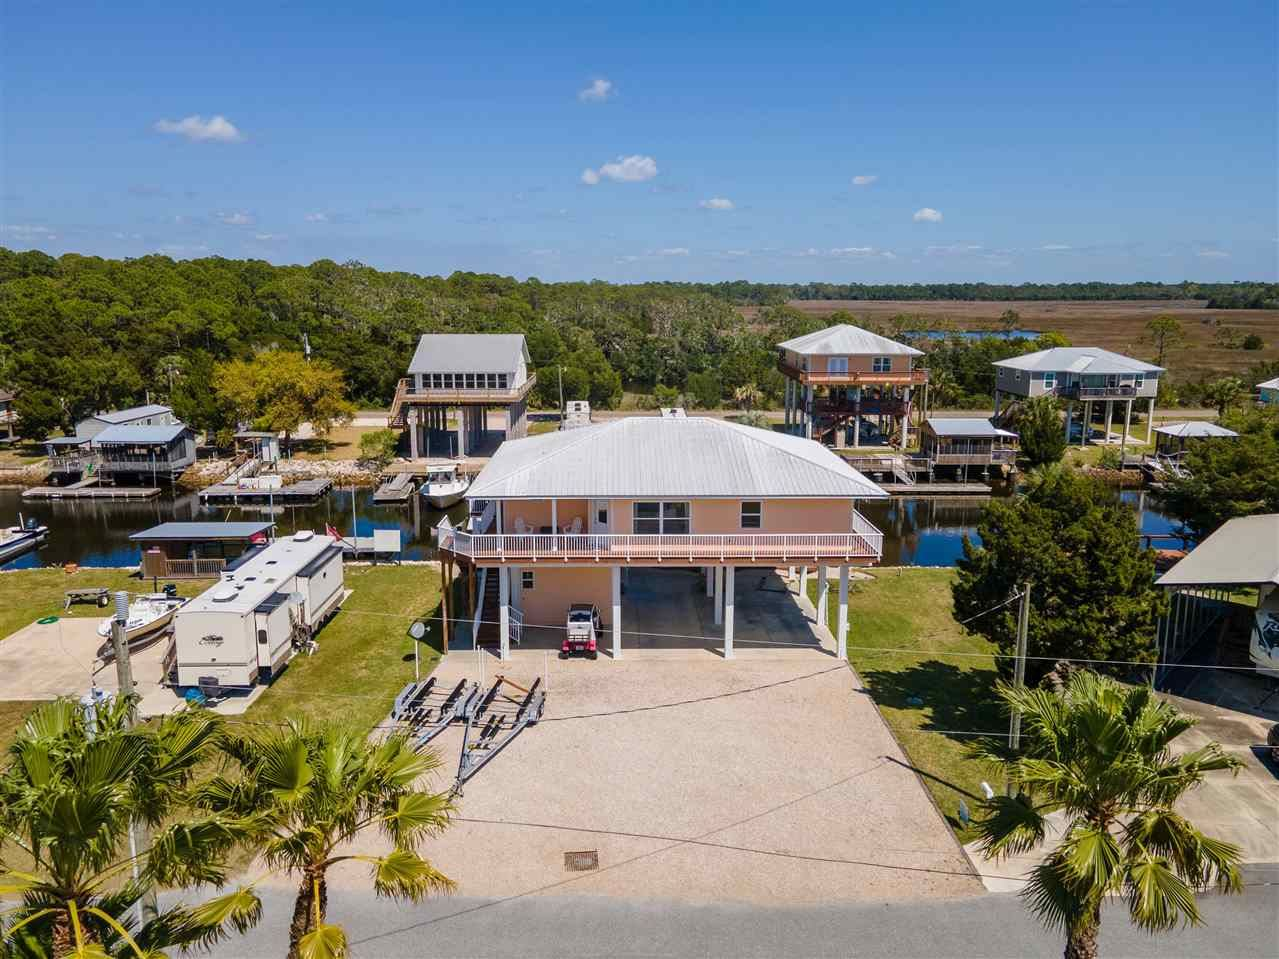 20400 PONCE DE LEON Road, Keaton Beach, FL 32348 - MLS#: 330657